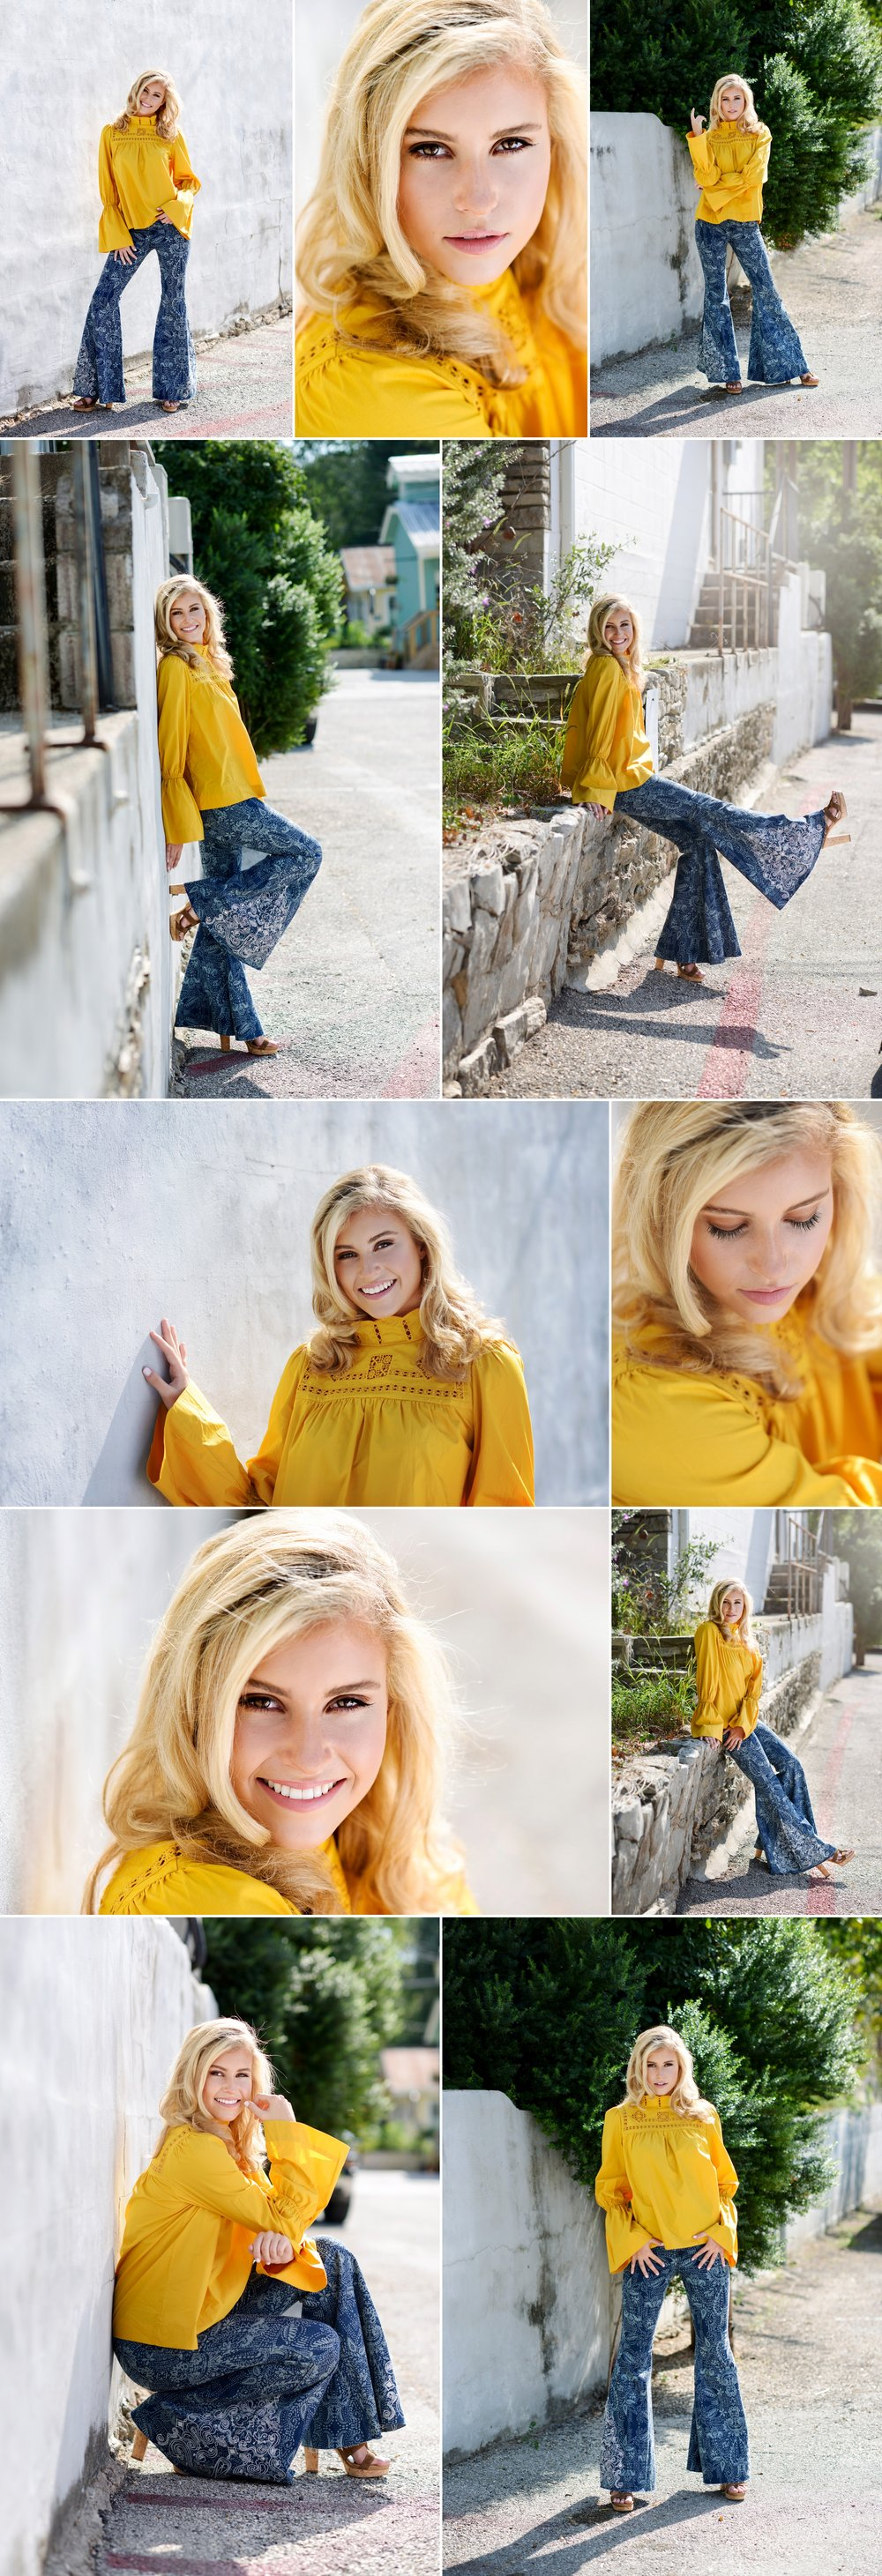 Austin Senior Photographer, Heidi Knight Photography.  Westlake High School.